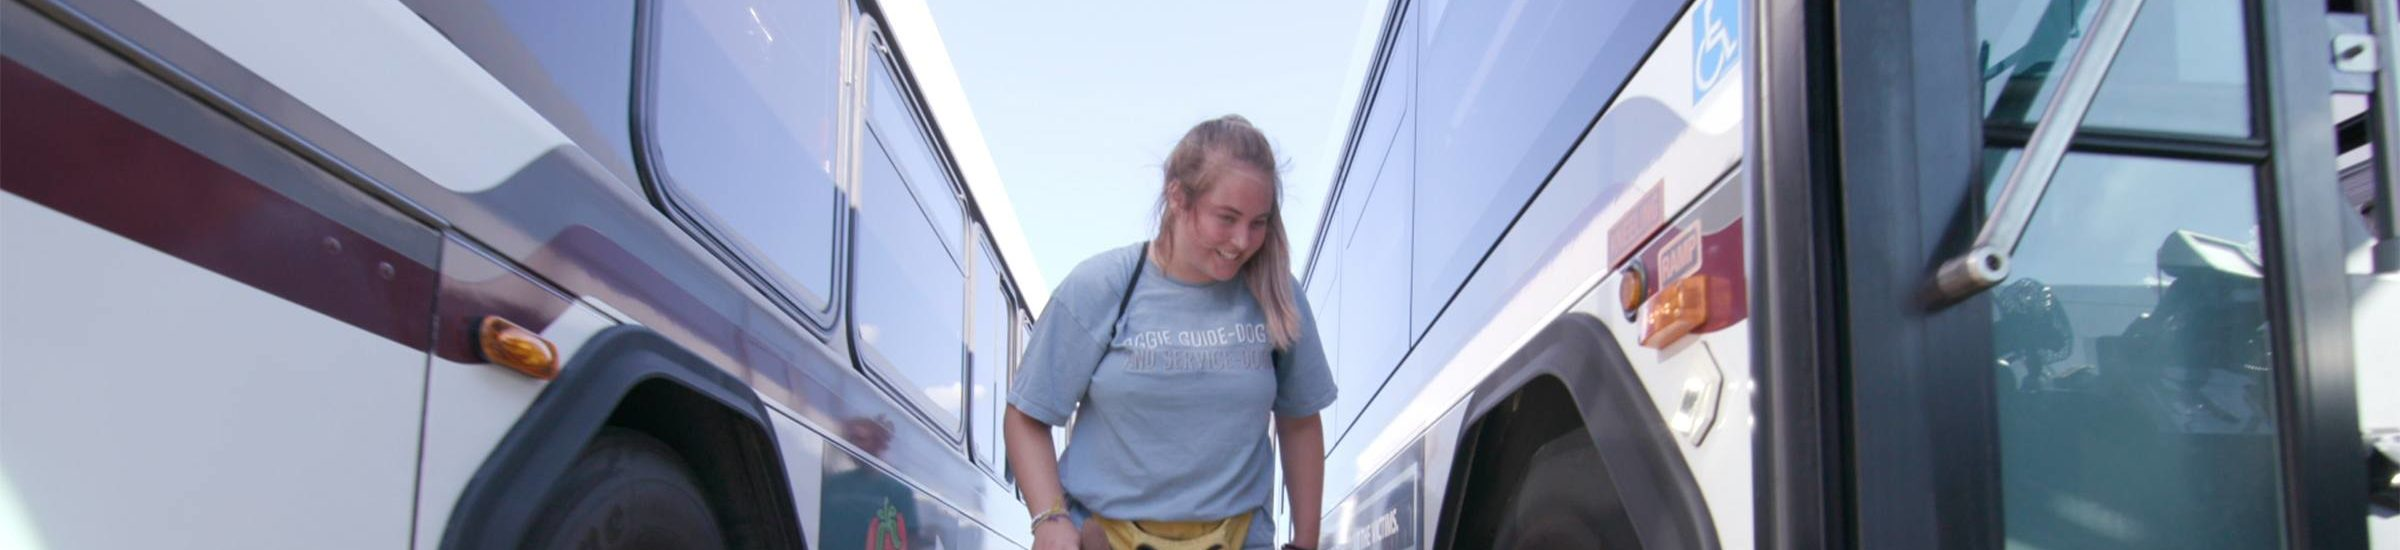 Student dog trainer steps onto bus with service dog